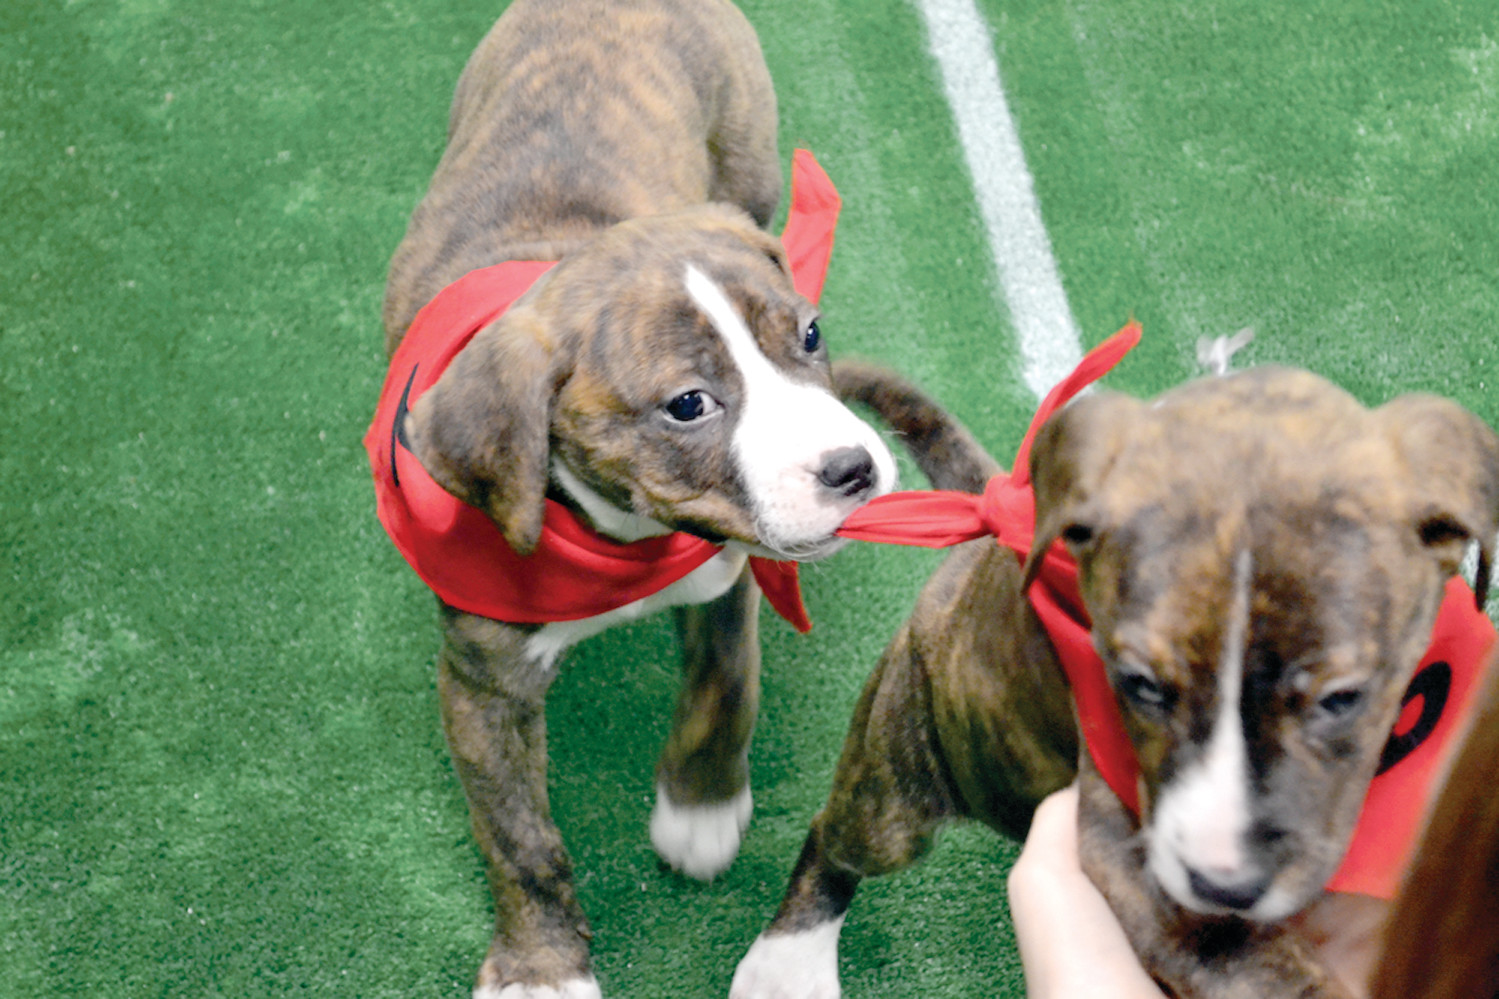 HOLDING: There aren't really any rules in a Puppy Bowl. About a dozen puppies are set loose on a playing field and they run around and play. Who needs rules when the game is that naturally wonderful? The puppy on the right suffered a wardrobe malfunction here.